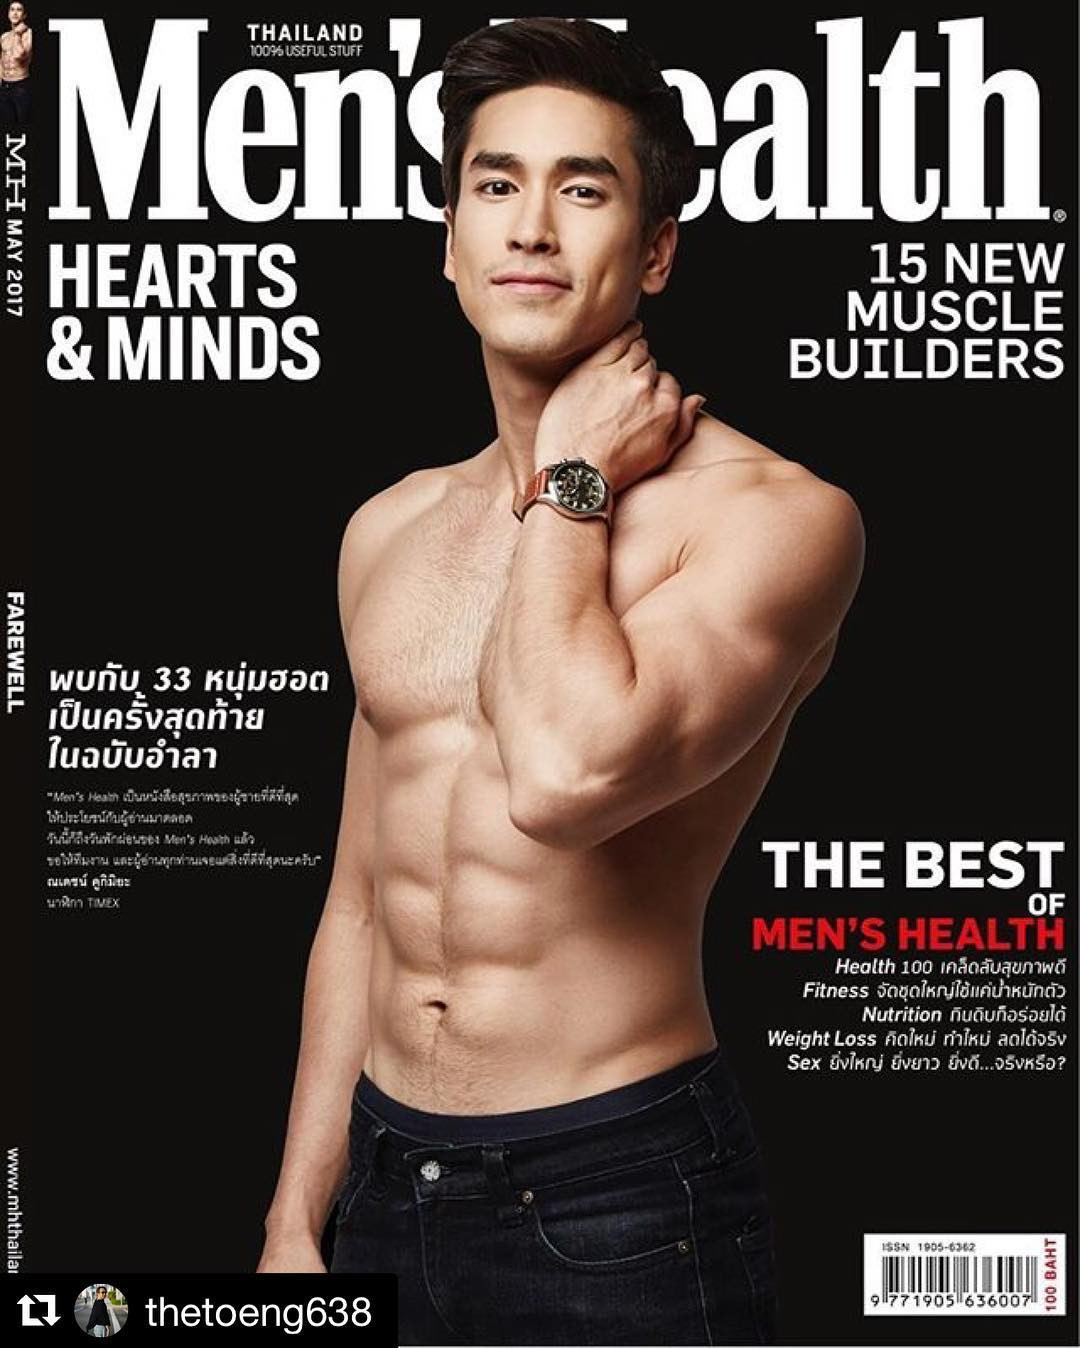 The most wonderful hybrid man in Thailand: Nadech, Mario both exist. But number one is unexpected - Photo 36.